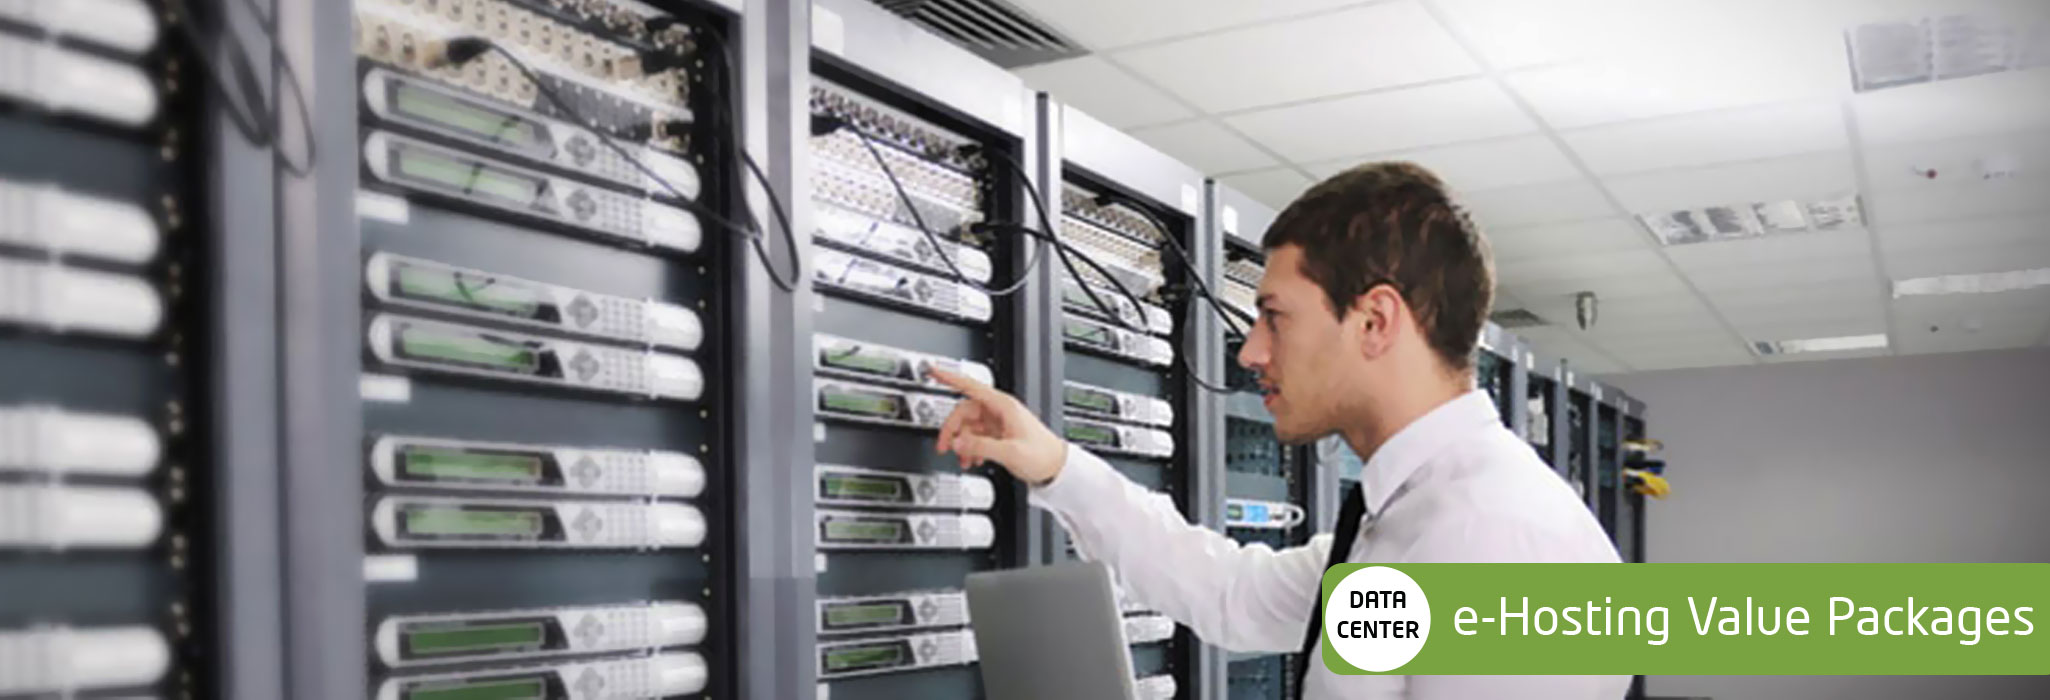 Etisalat eHosting Value Packages